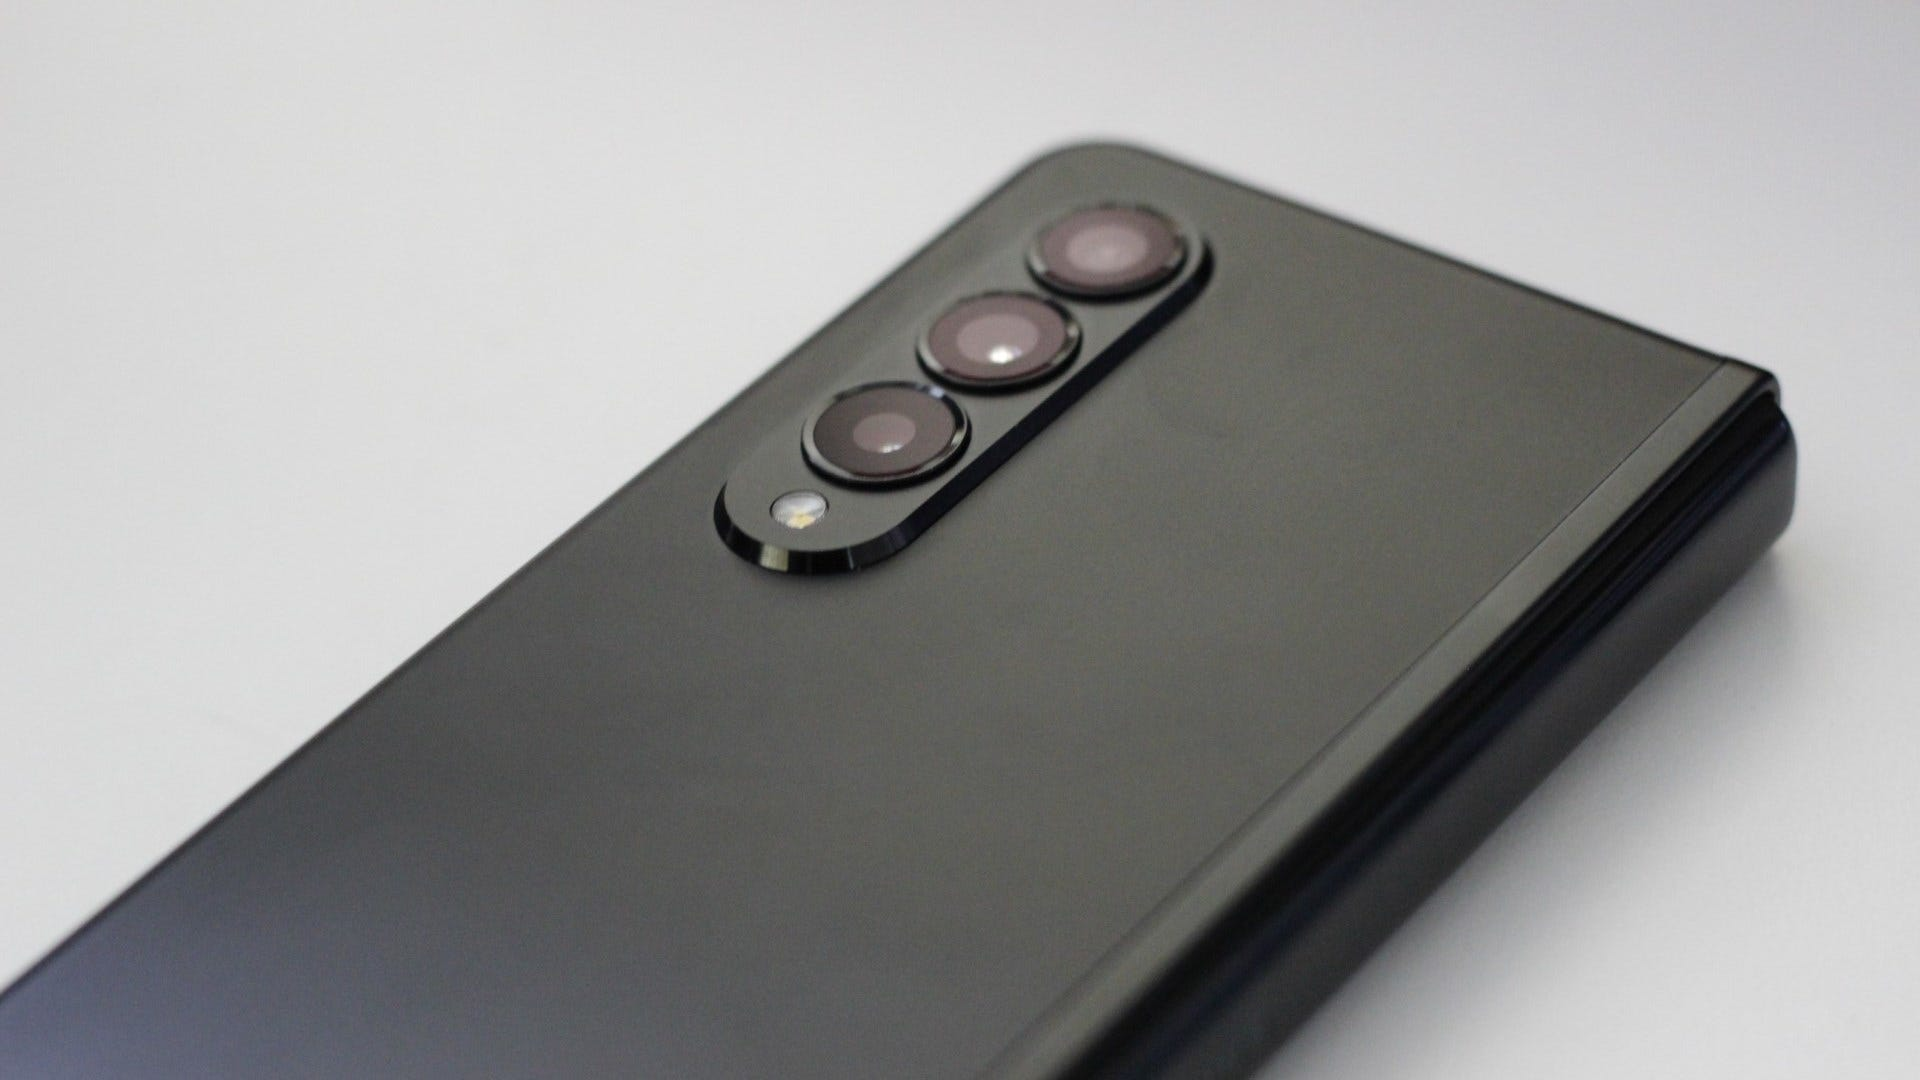 The triple camera array on the back of the Z Fold 3